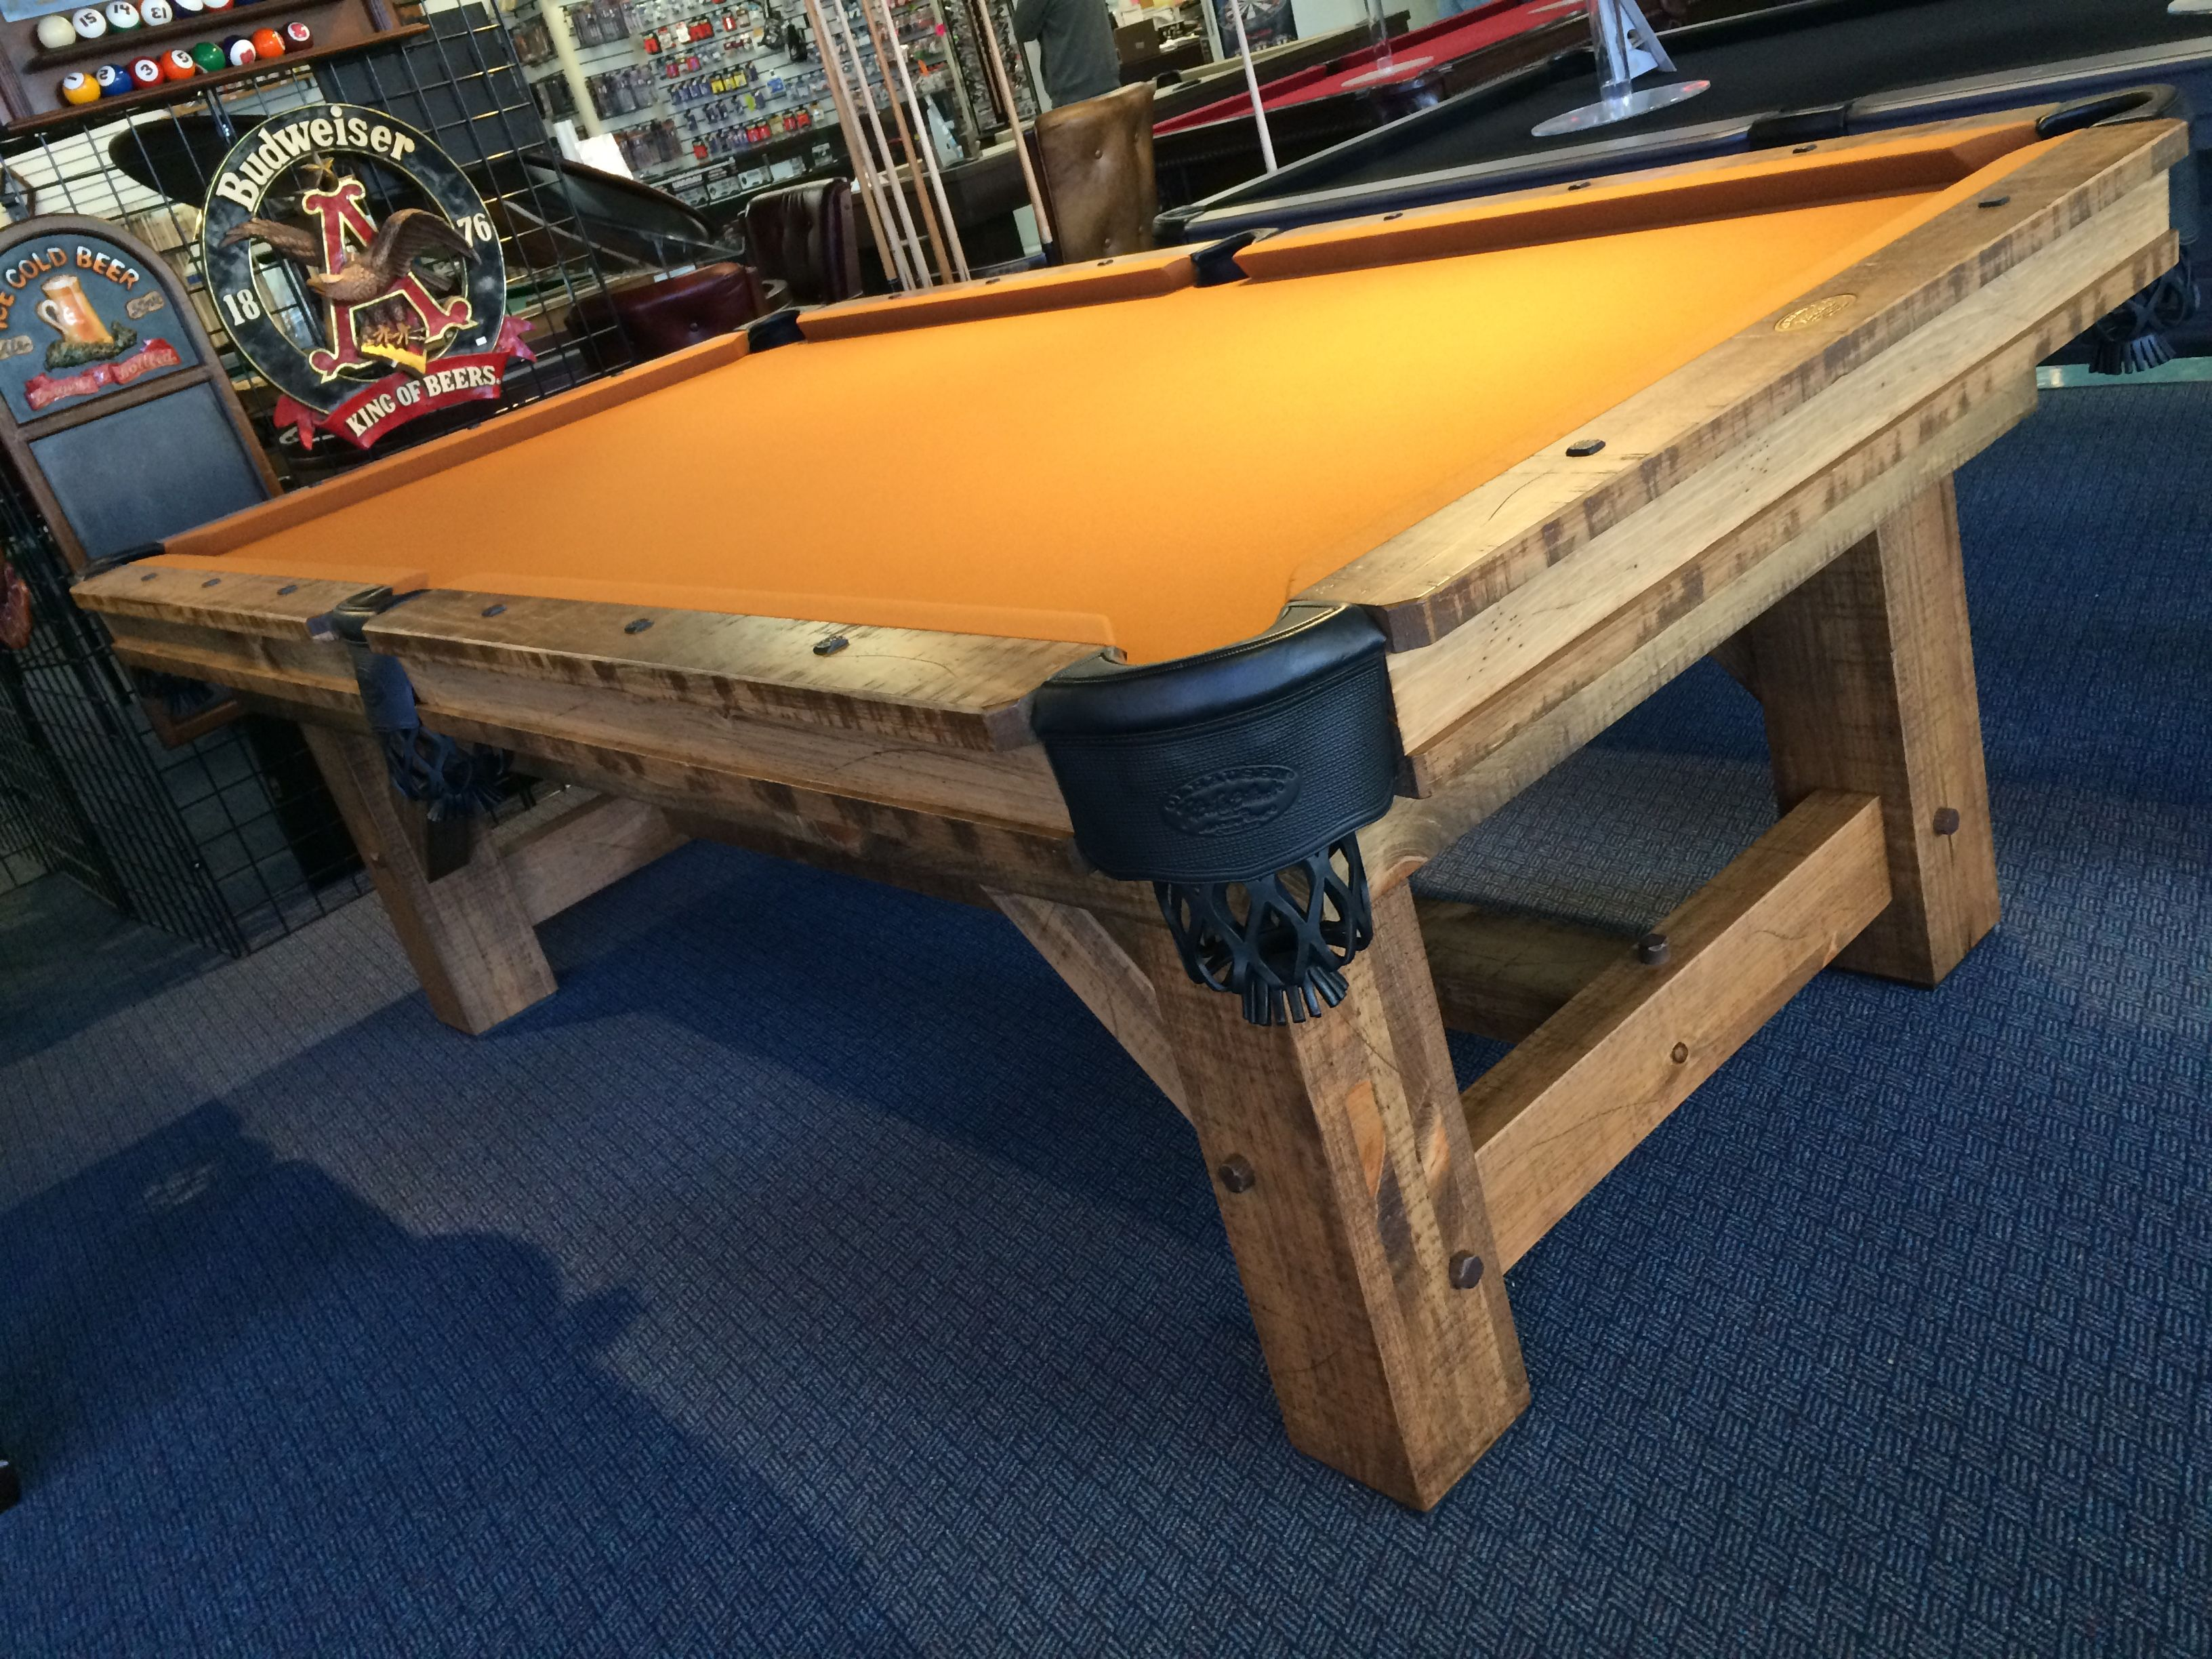 Beau We Are Thrilled To Have The New Olhausen Timber Ridge Pool Table On Display  In Our Raleigh, NC Showroom. It Blends Rustic And Modern Details For An  Very ...